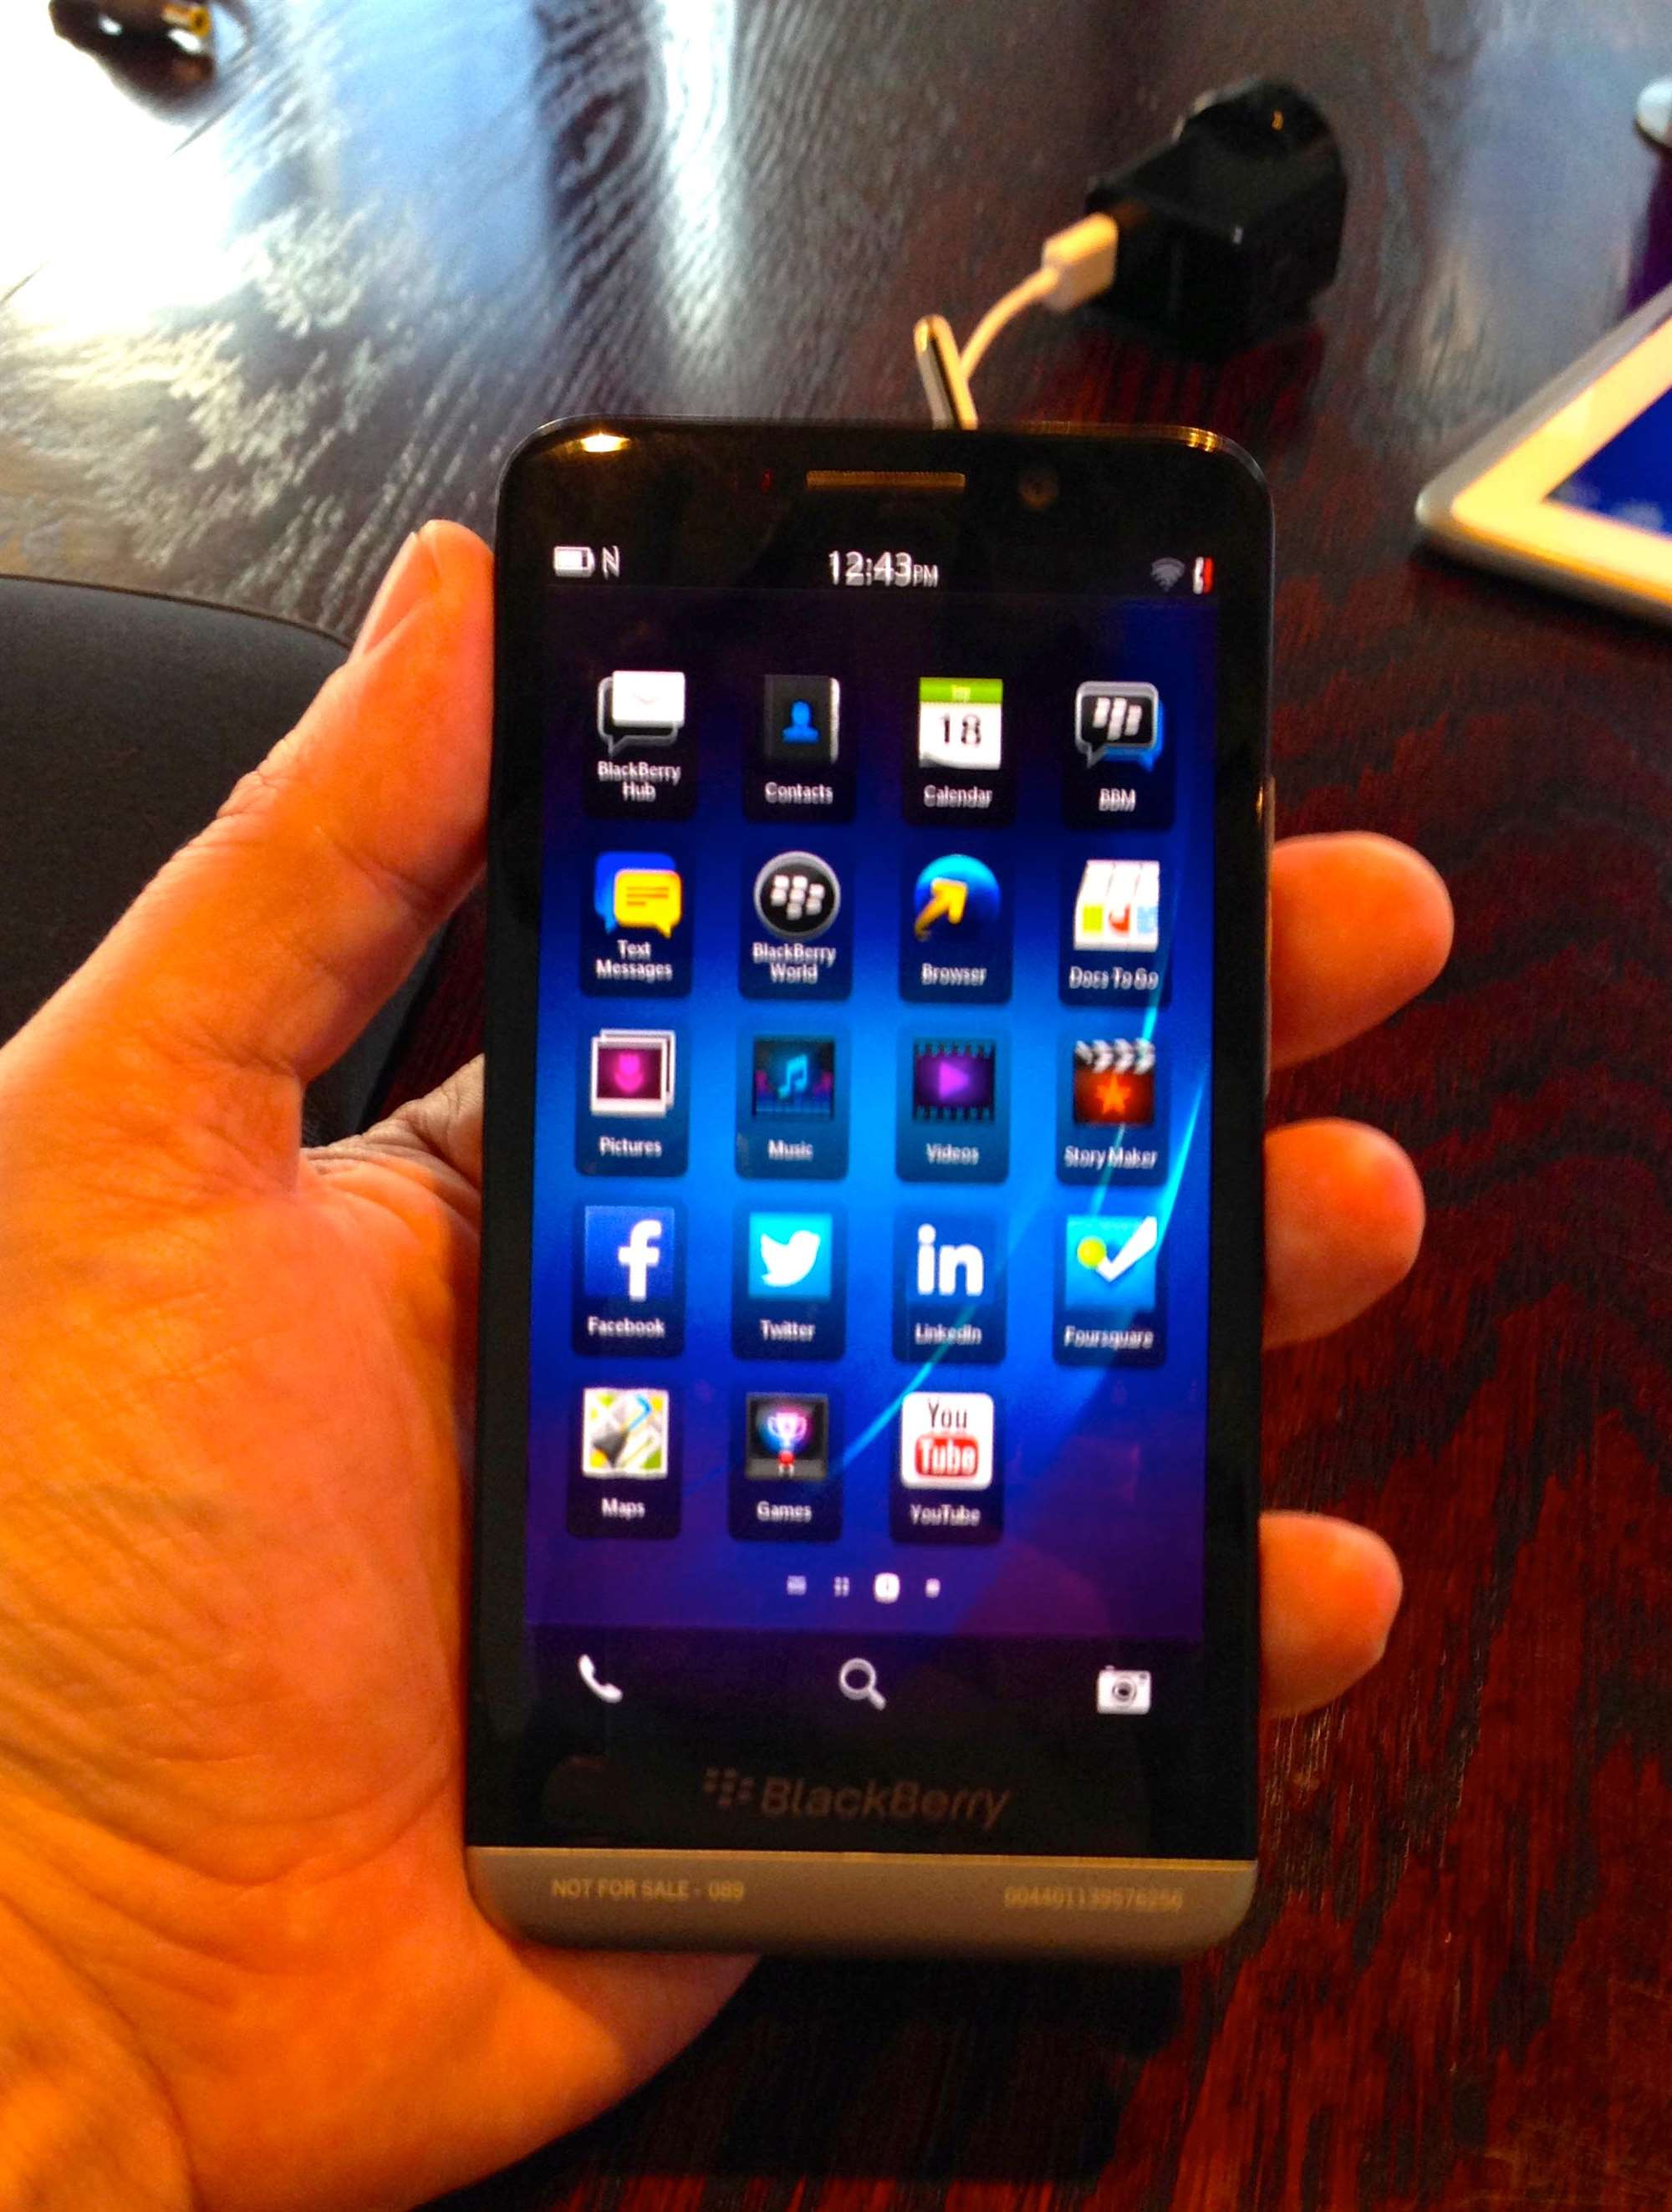 First look: BlackBerry's new Z30 - Mobility - CRN Australia